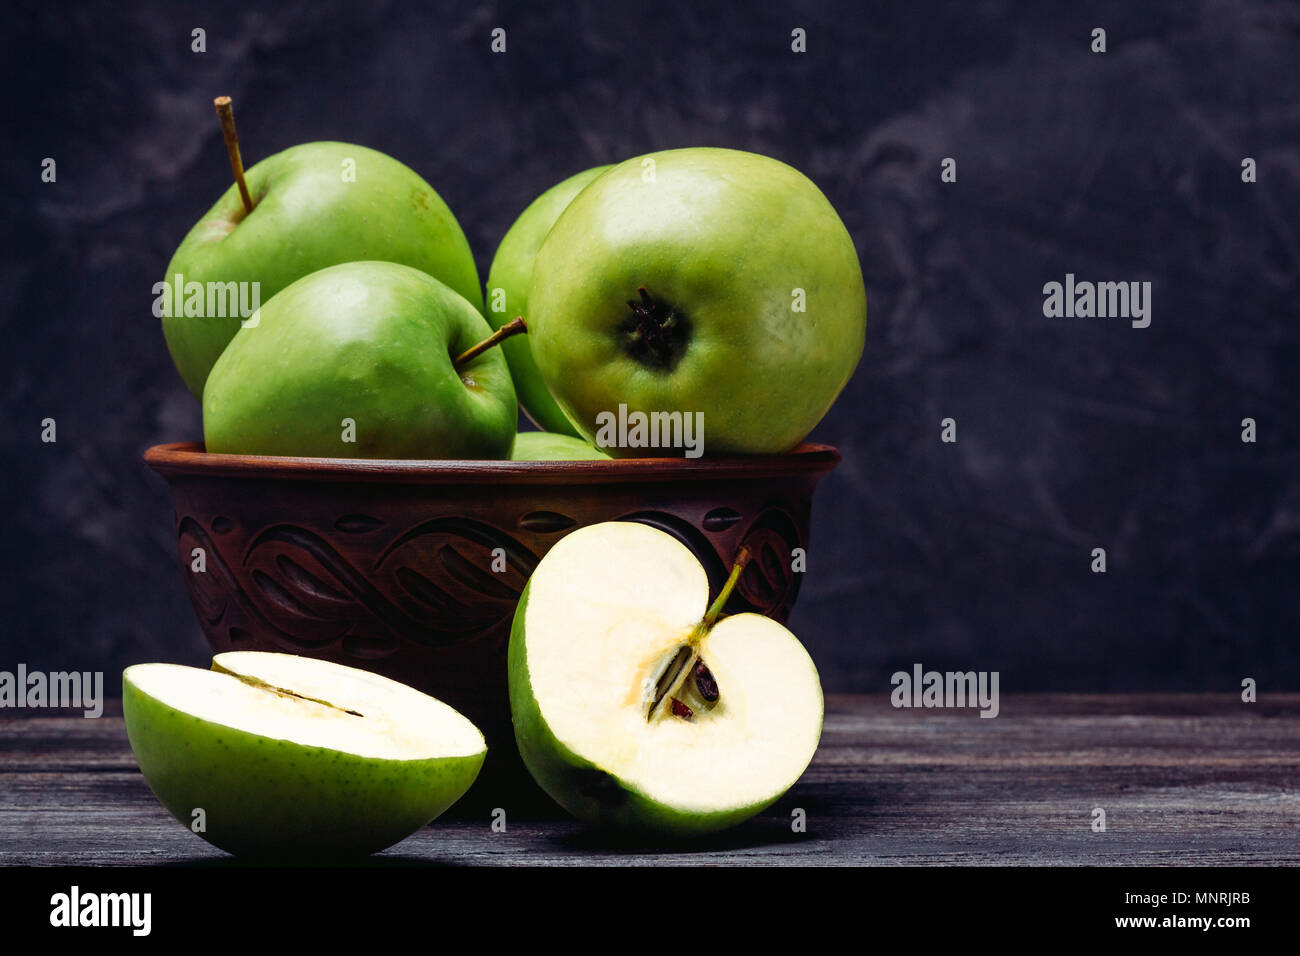 How beautiful to cut apples